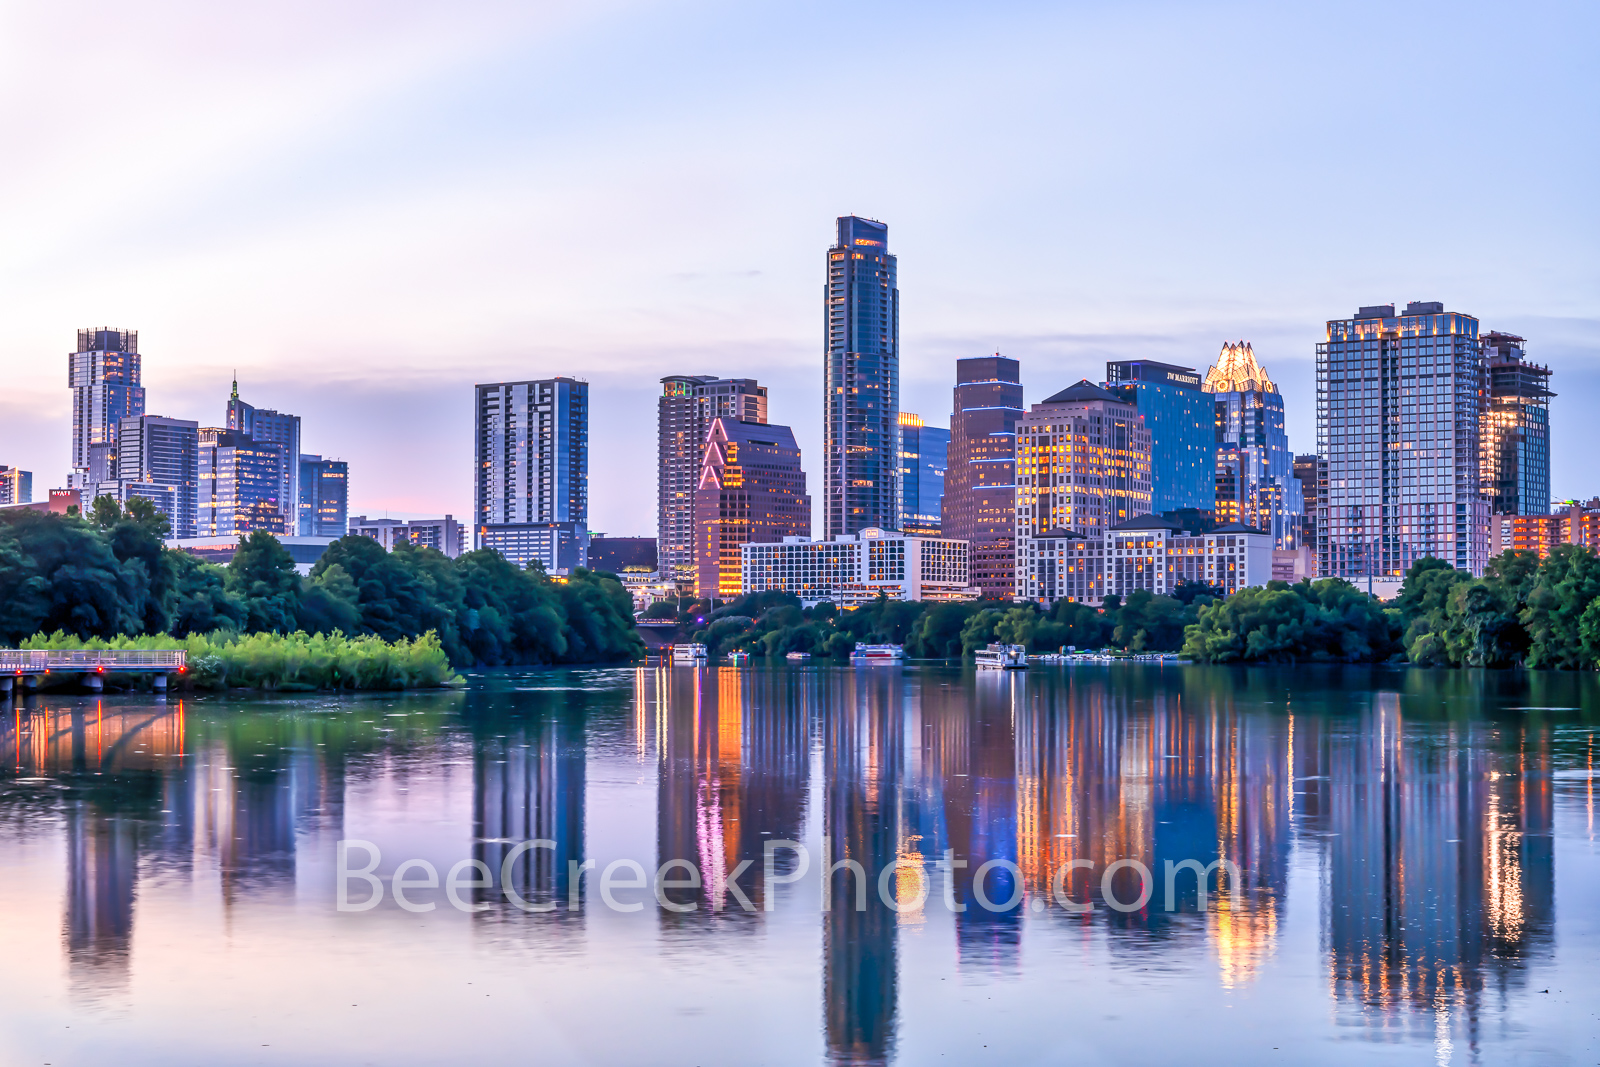 Austin Skyline, Violet Crown, austin, skyline, pics of texas, boardwalk, violet, purple, pink, lavender, sunset, blue hour, buildings, reflections, water, lady bird lake, urban, urban landscape, city,, photo